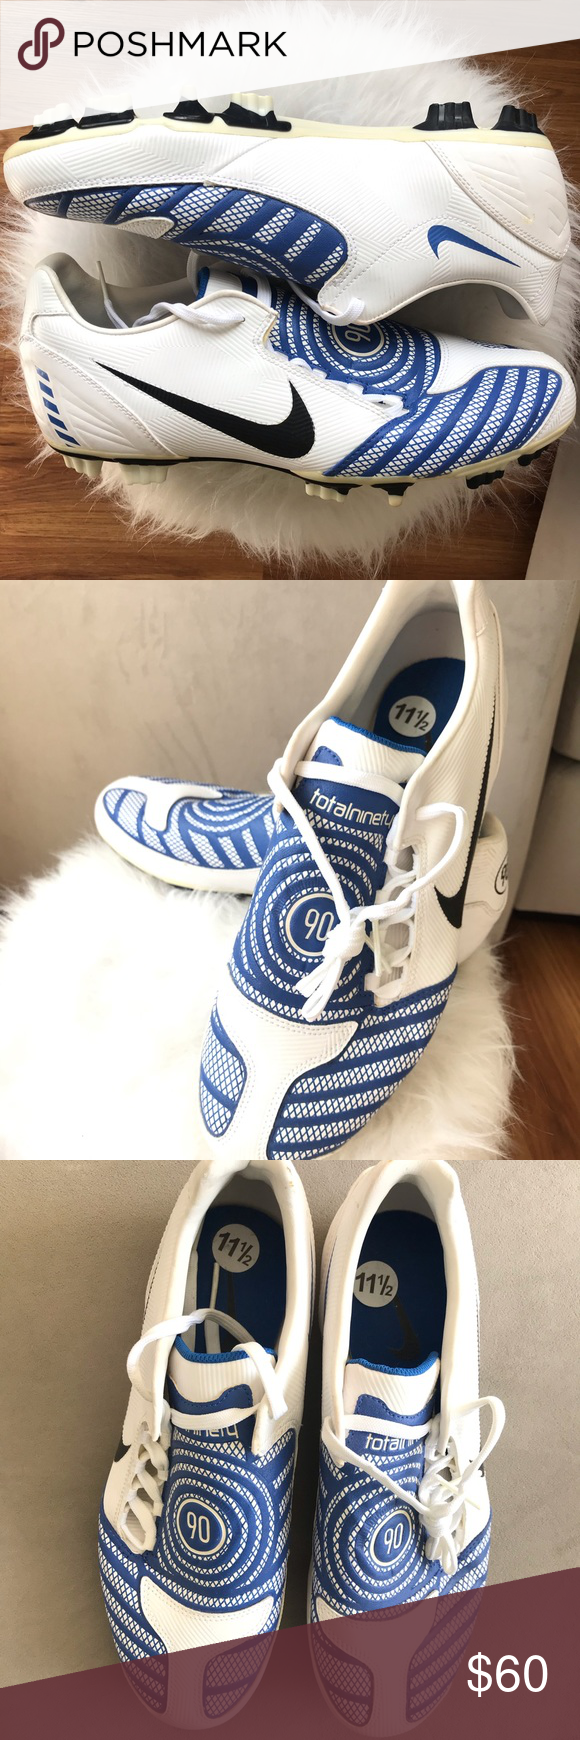 proyector Respetuoso del medio ambiente Probar  Nike Total 90 Ninety Soccer Cleats size 11.5 white NWT | Soccer cleats, Nike  total 90, Vans classic slip on sneaker